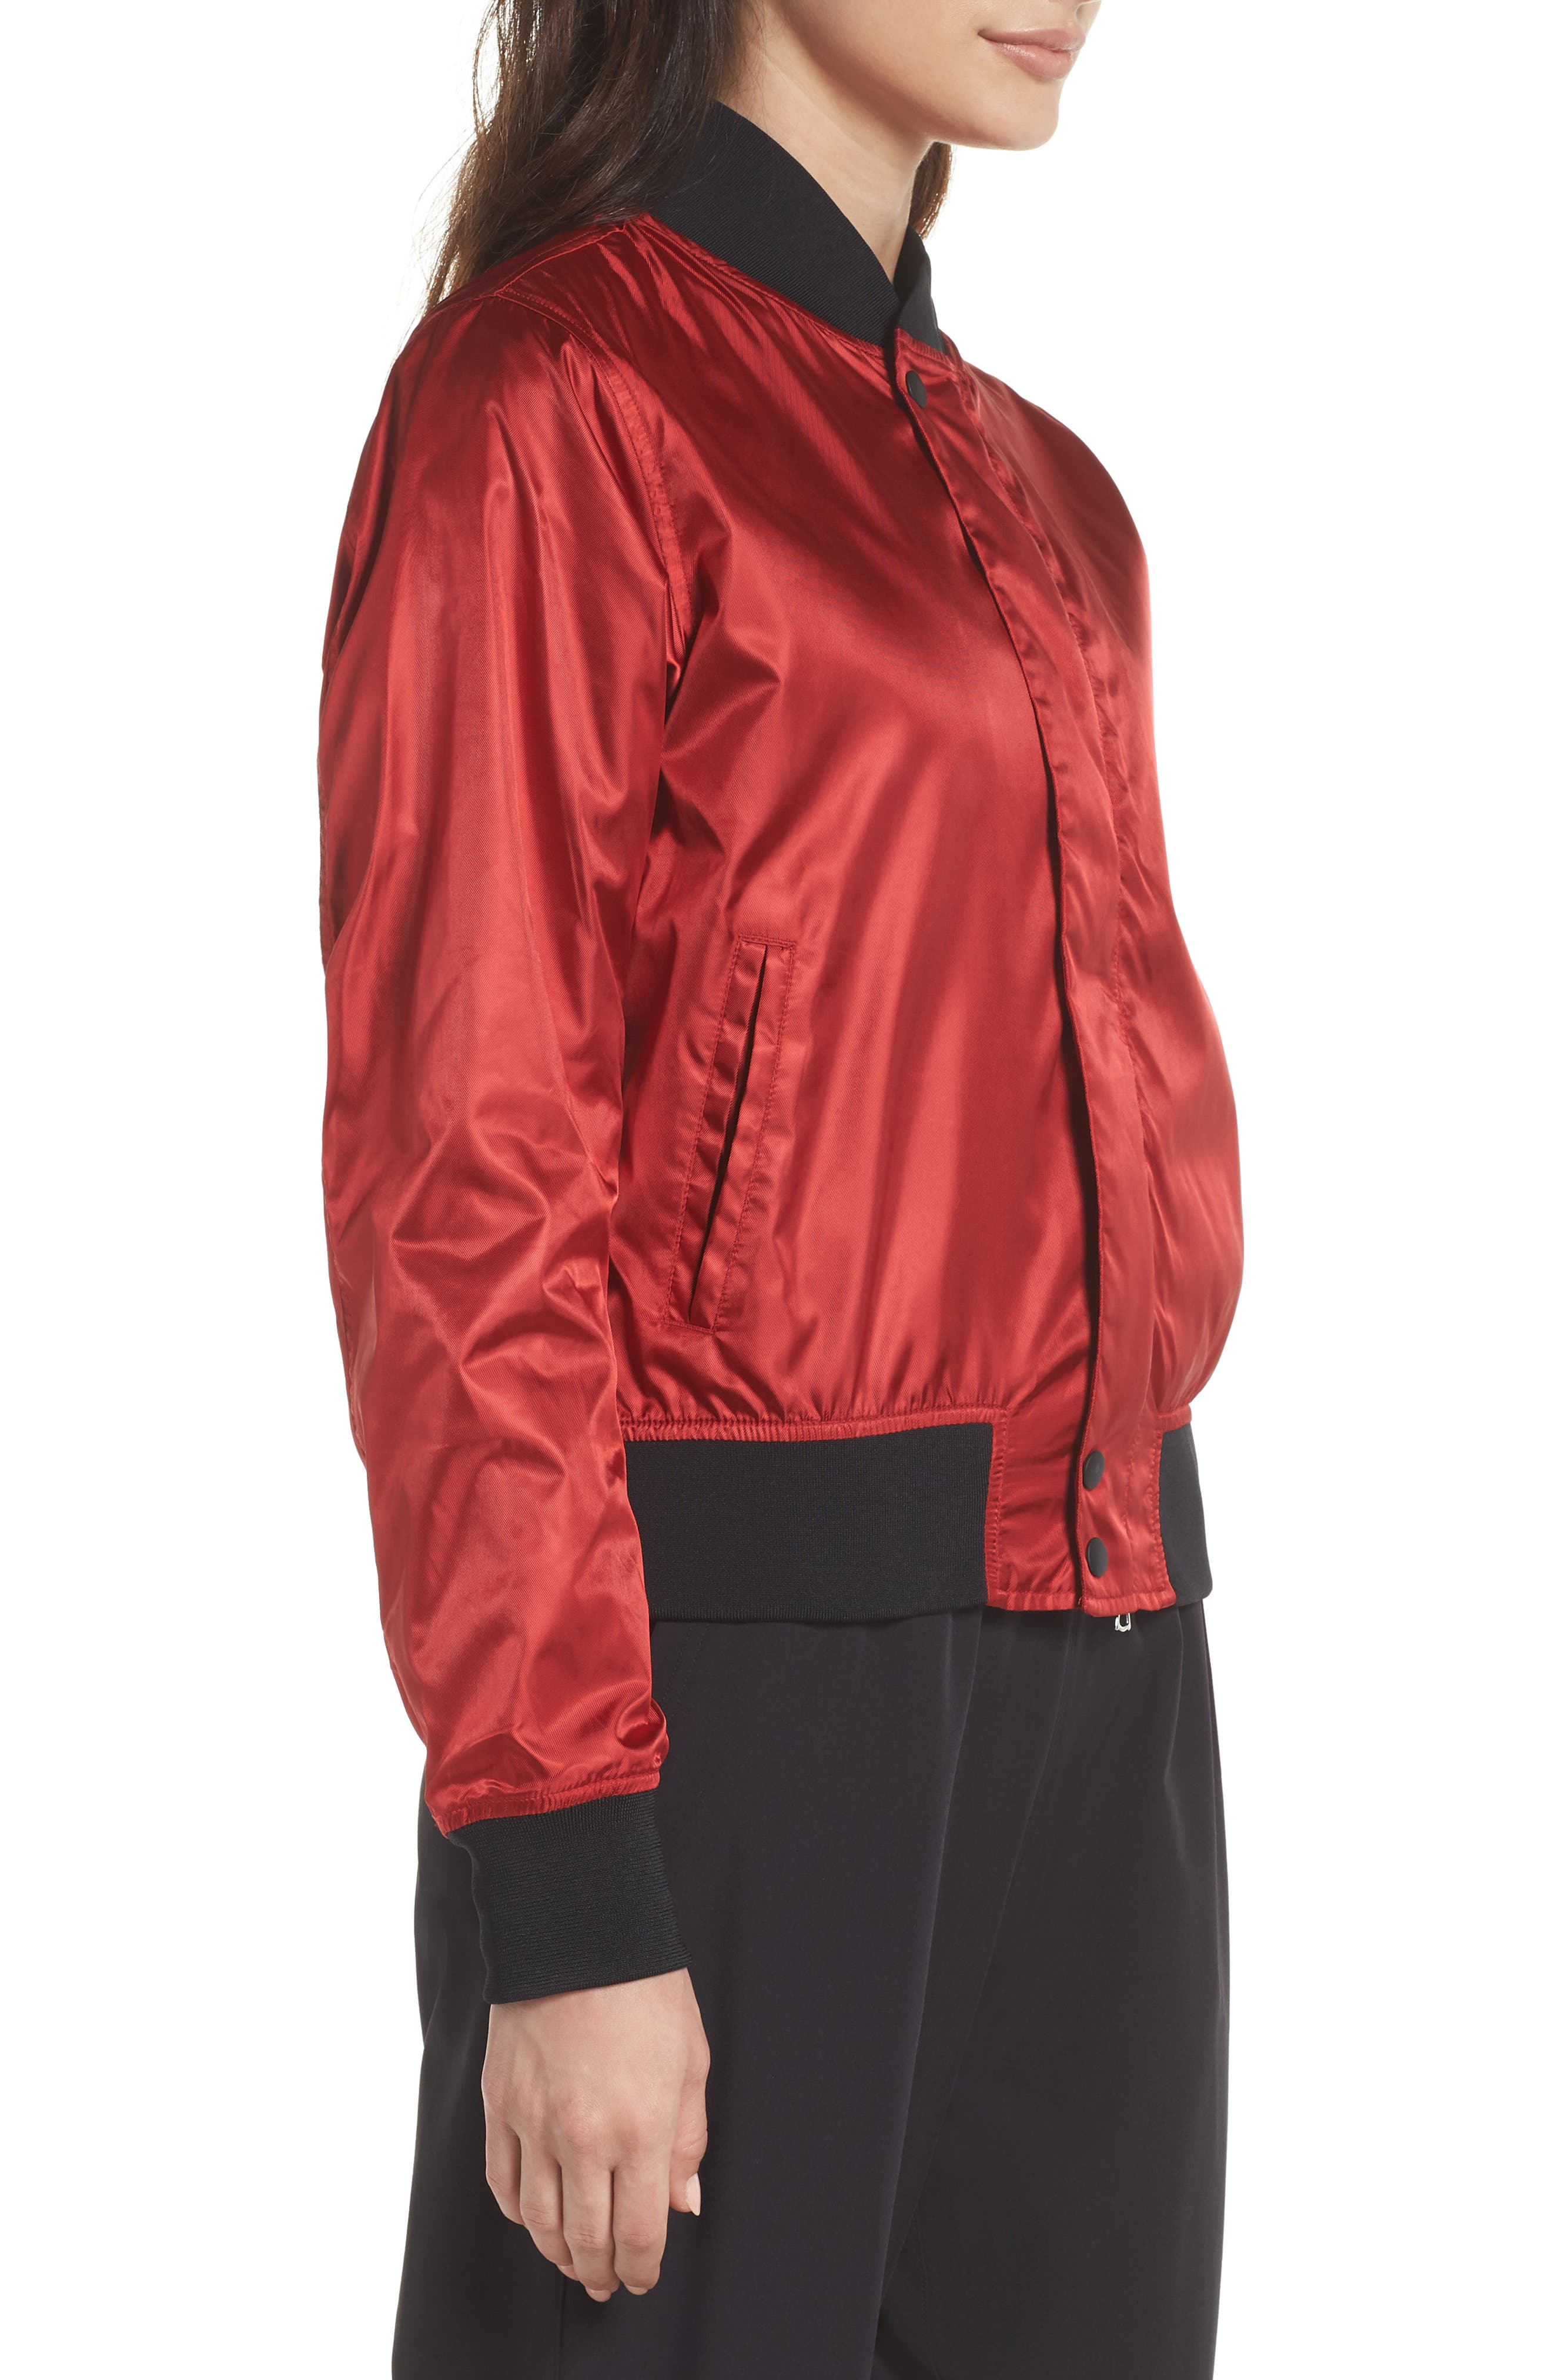 NikeLab Collection Women's Satin Bomber Jacket,                             Alternate thumbnail 3, color,                             600